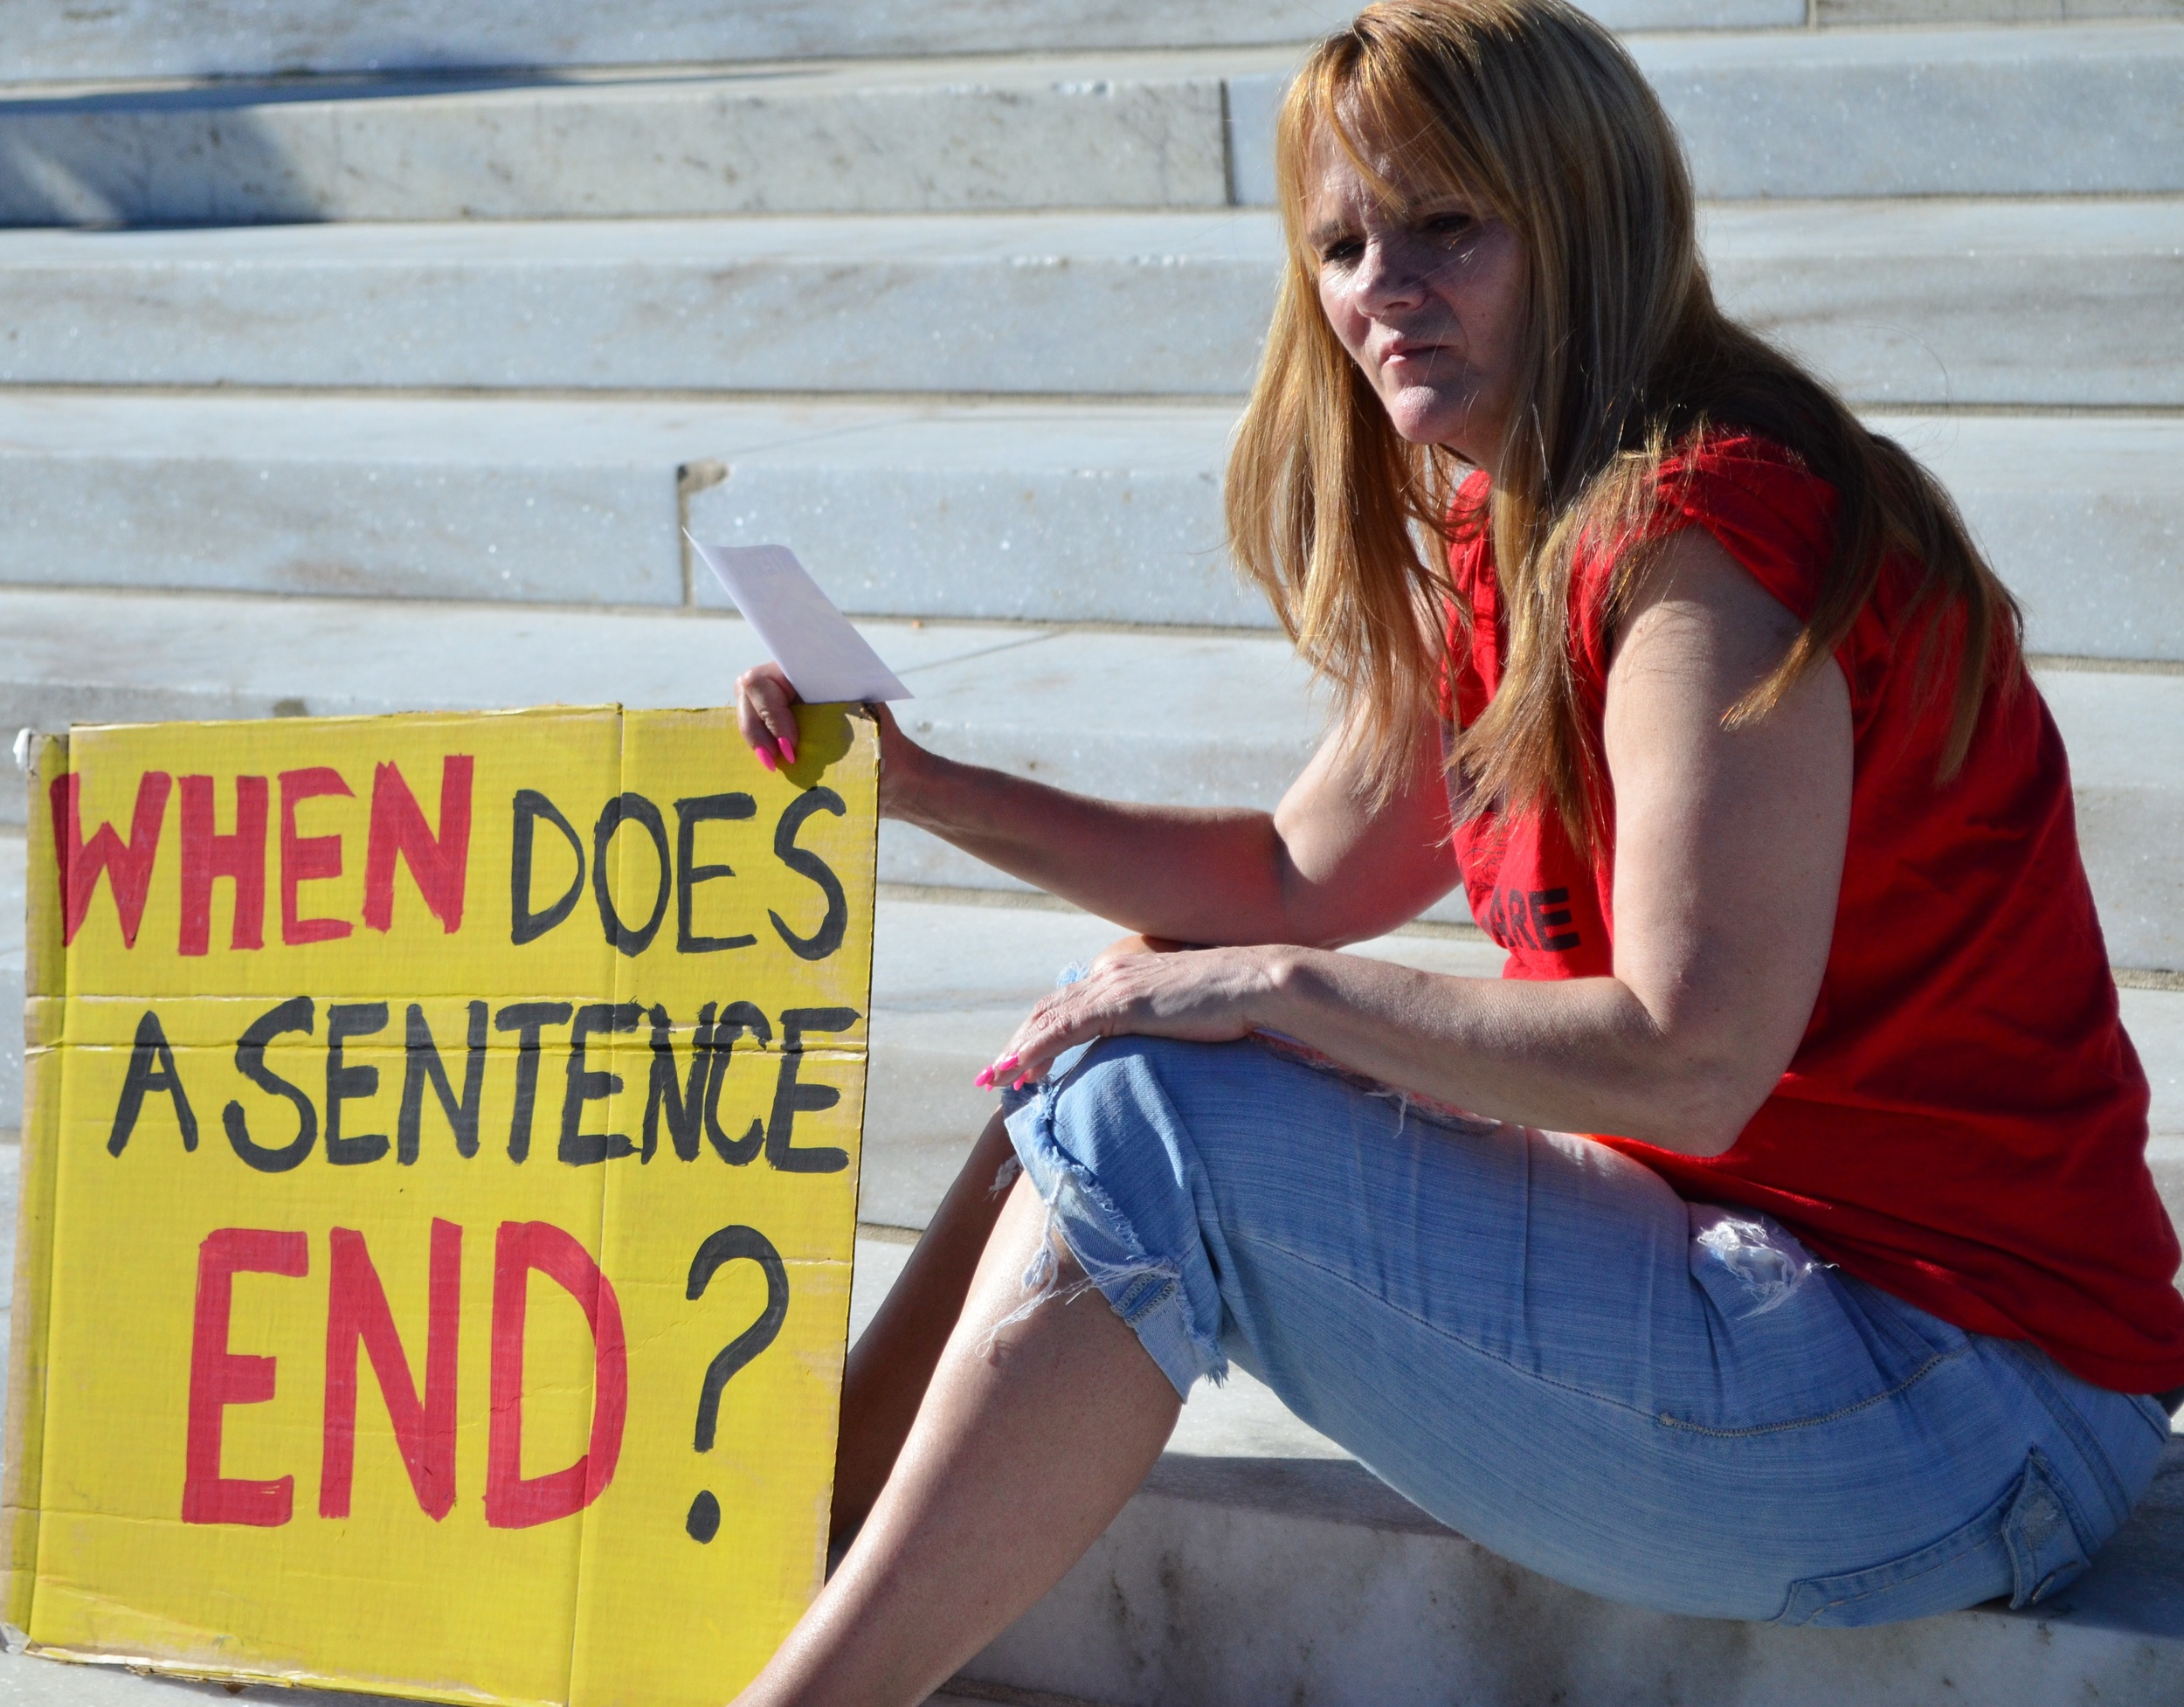 when does a sentence end?.jpg